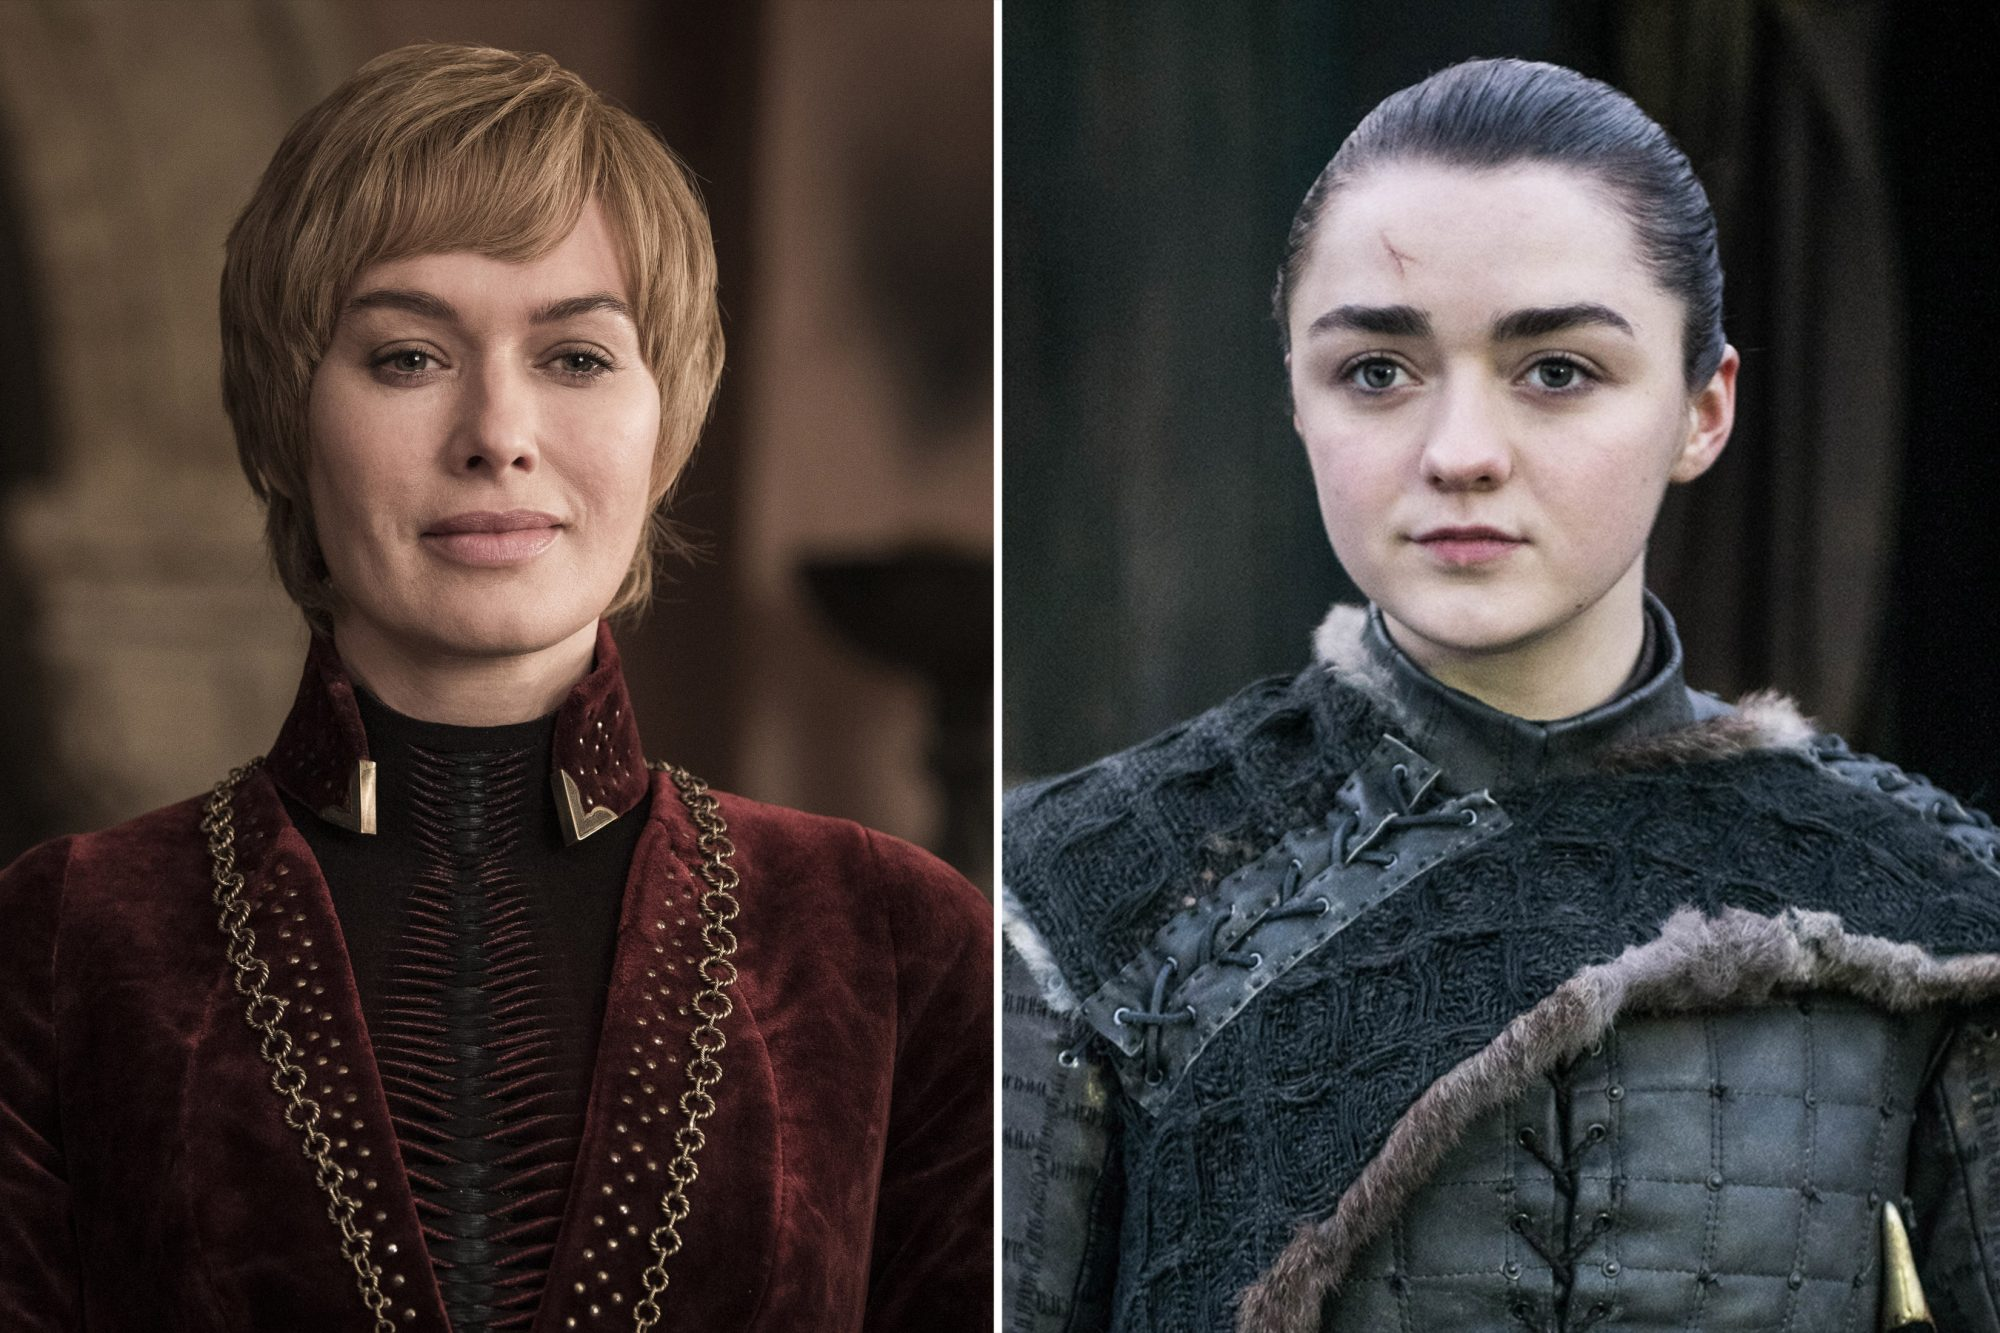 Game of Thrones Lena Headey as Cersei Lannister Maisie Williams as Arya Stark